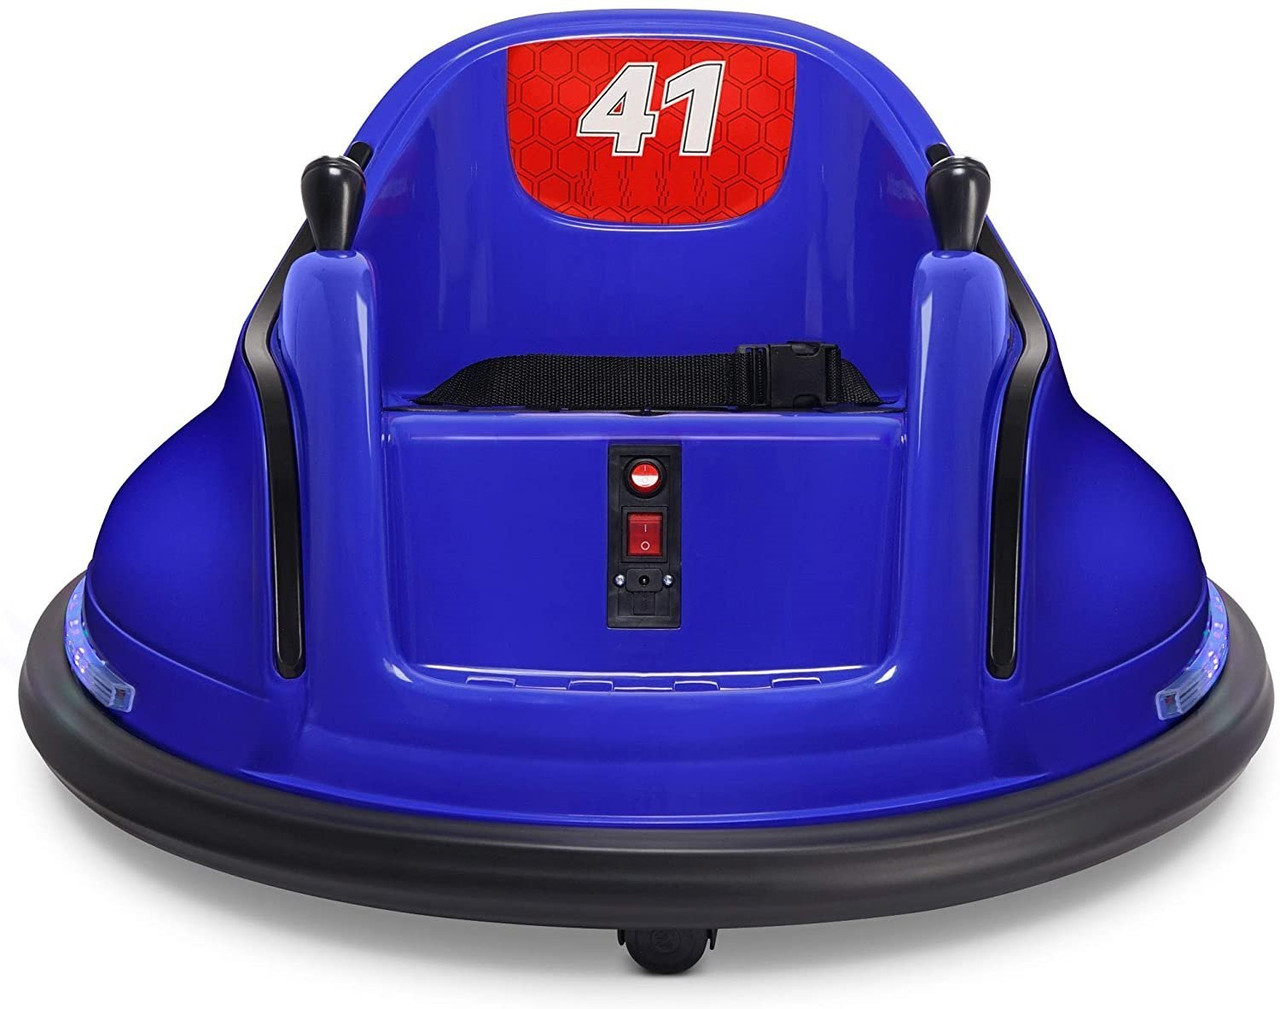 Kids Electric Ride On Bumper Car (FREE WORLDWIDE SHIPPING)